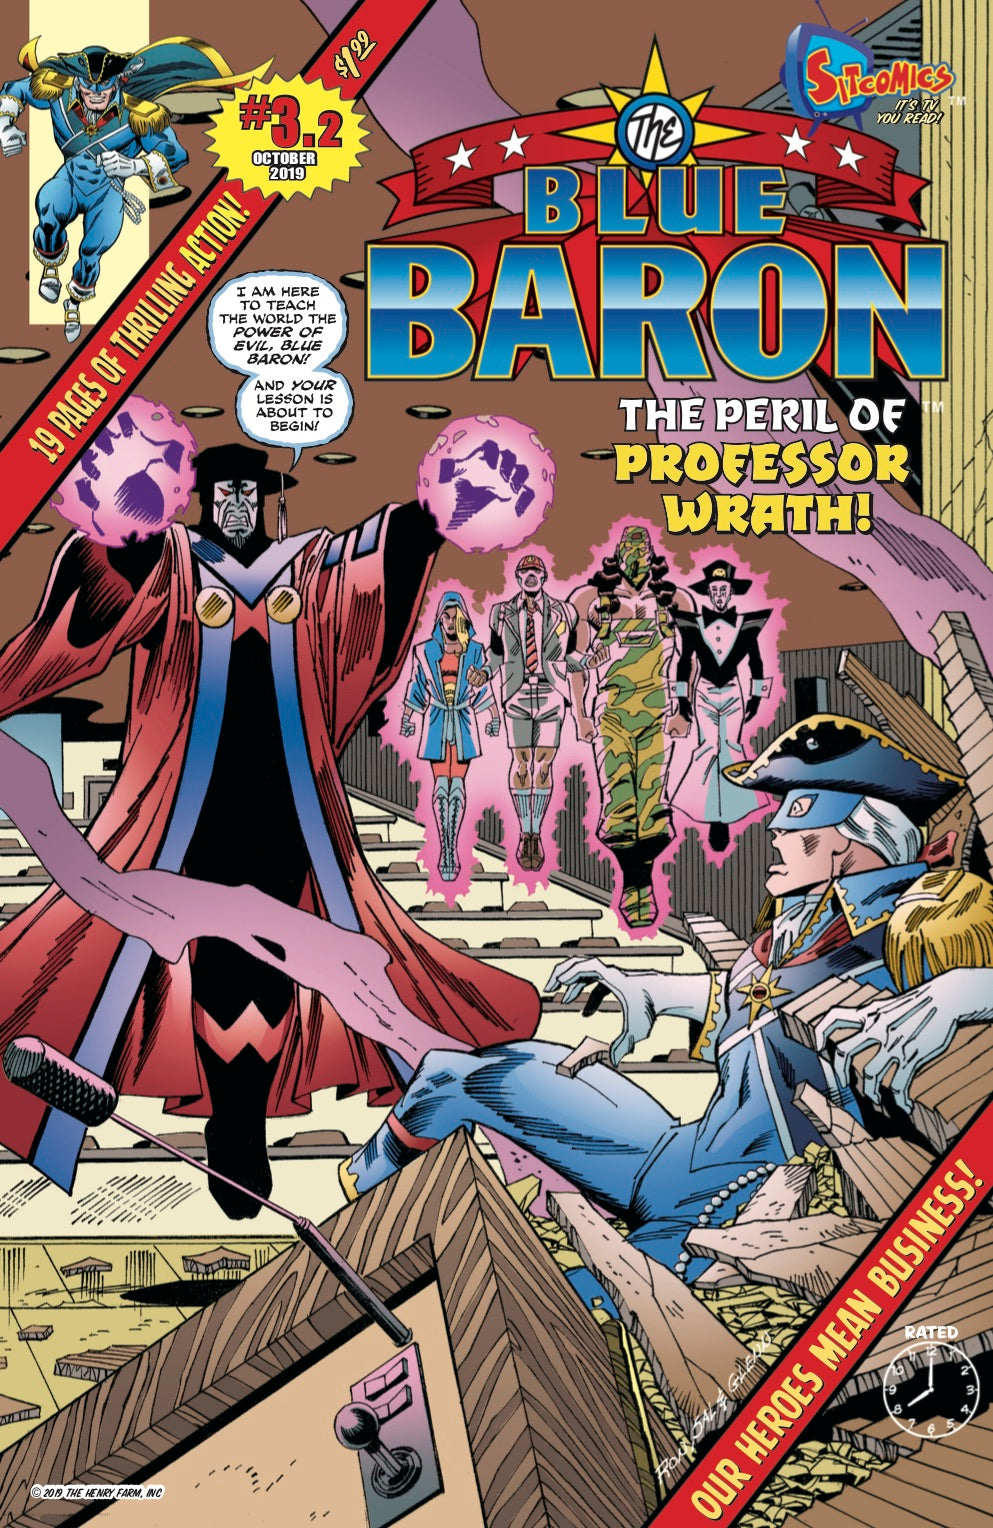 Blue Baron #3.2 (Digital Download)